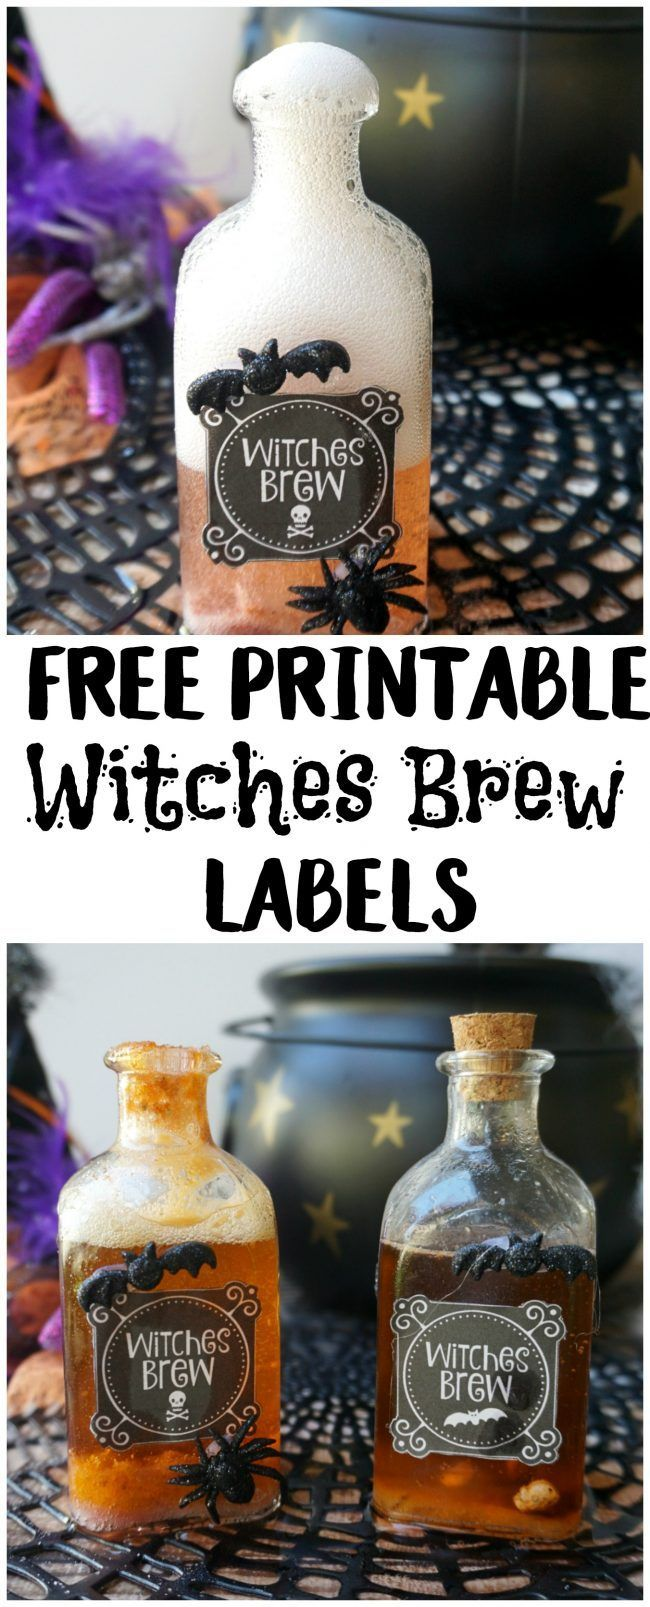 Free Printable Halloween Witches Brew Labels | Halloween ...